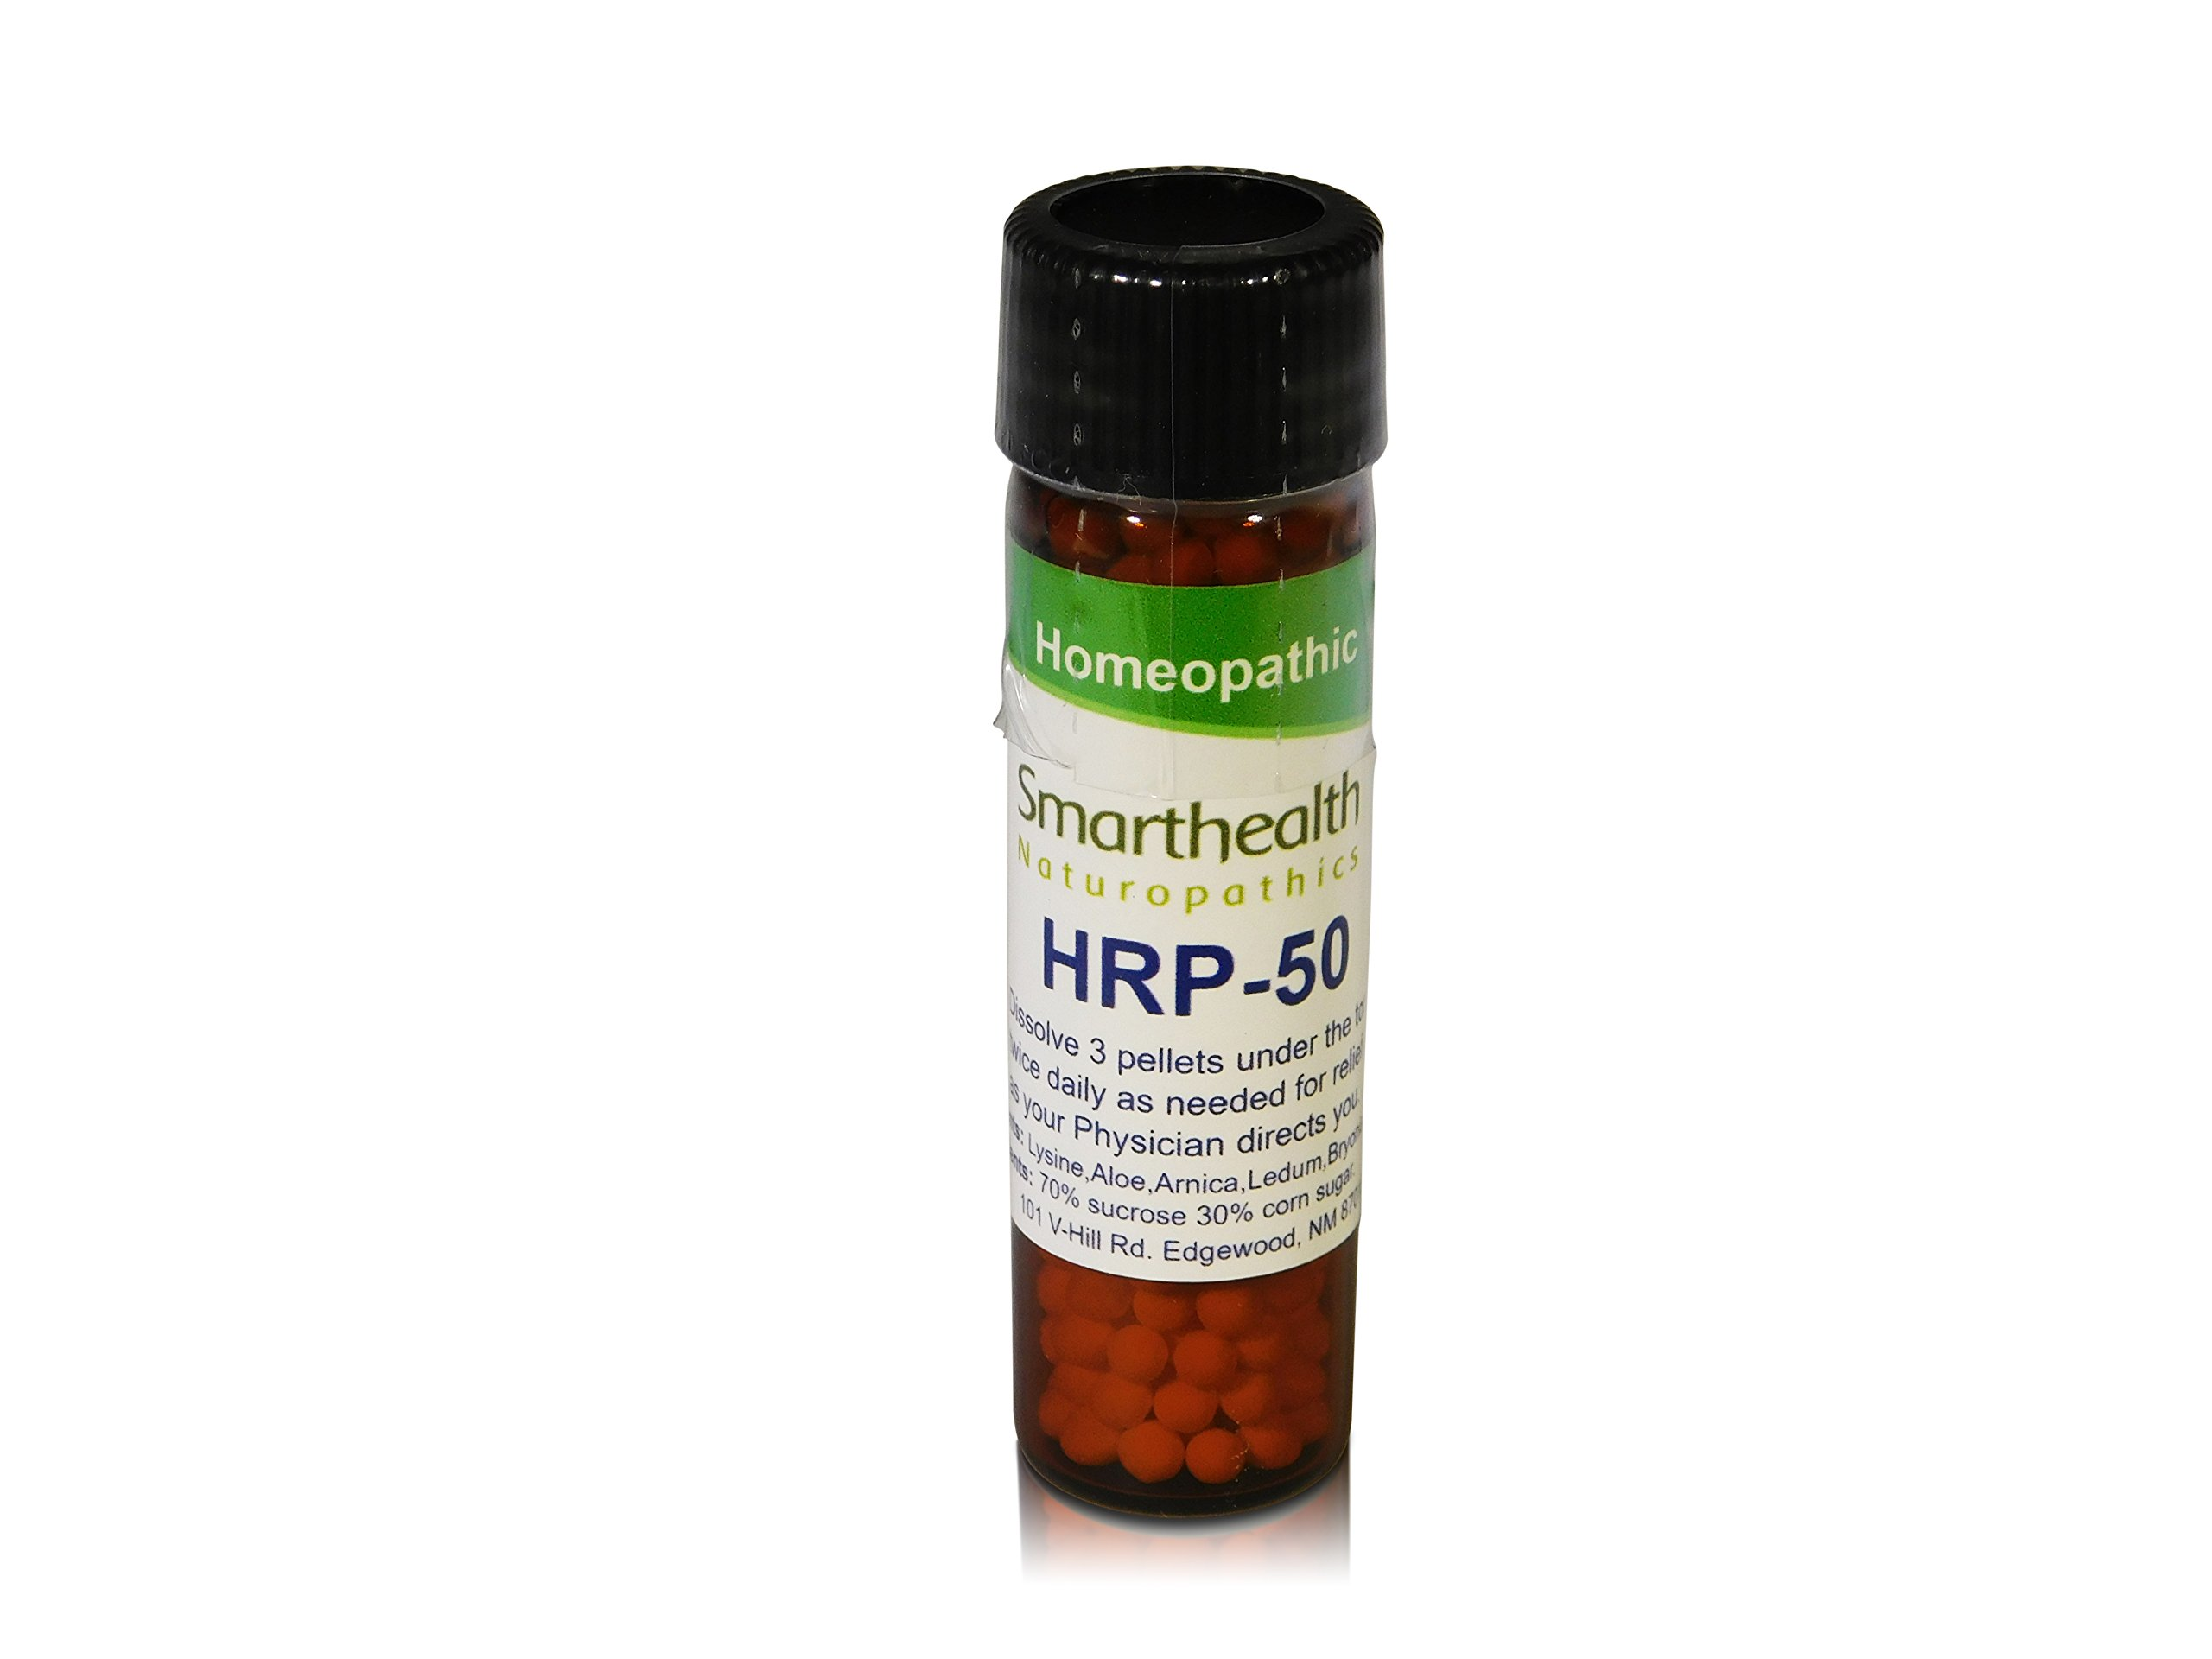 ''HRP-50 All Natural Homeopathic Formula For Her-pees. by Smarthealth, naturopathics